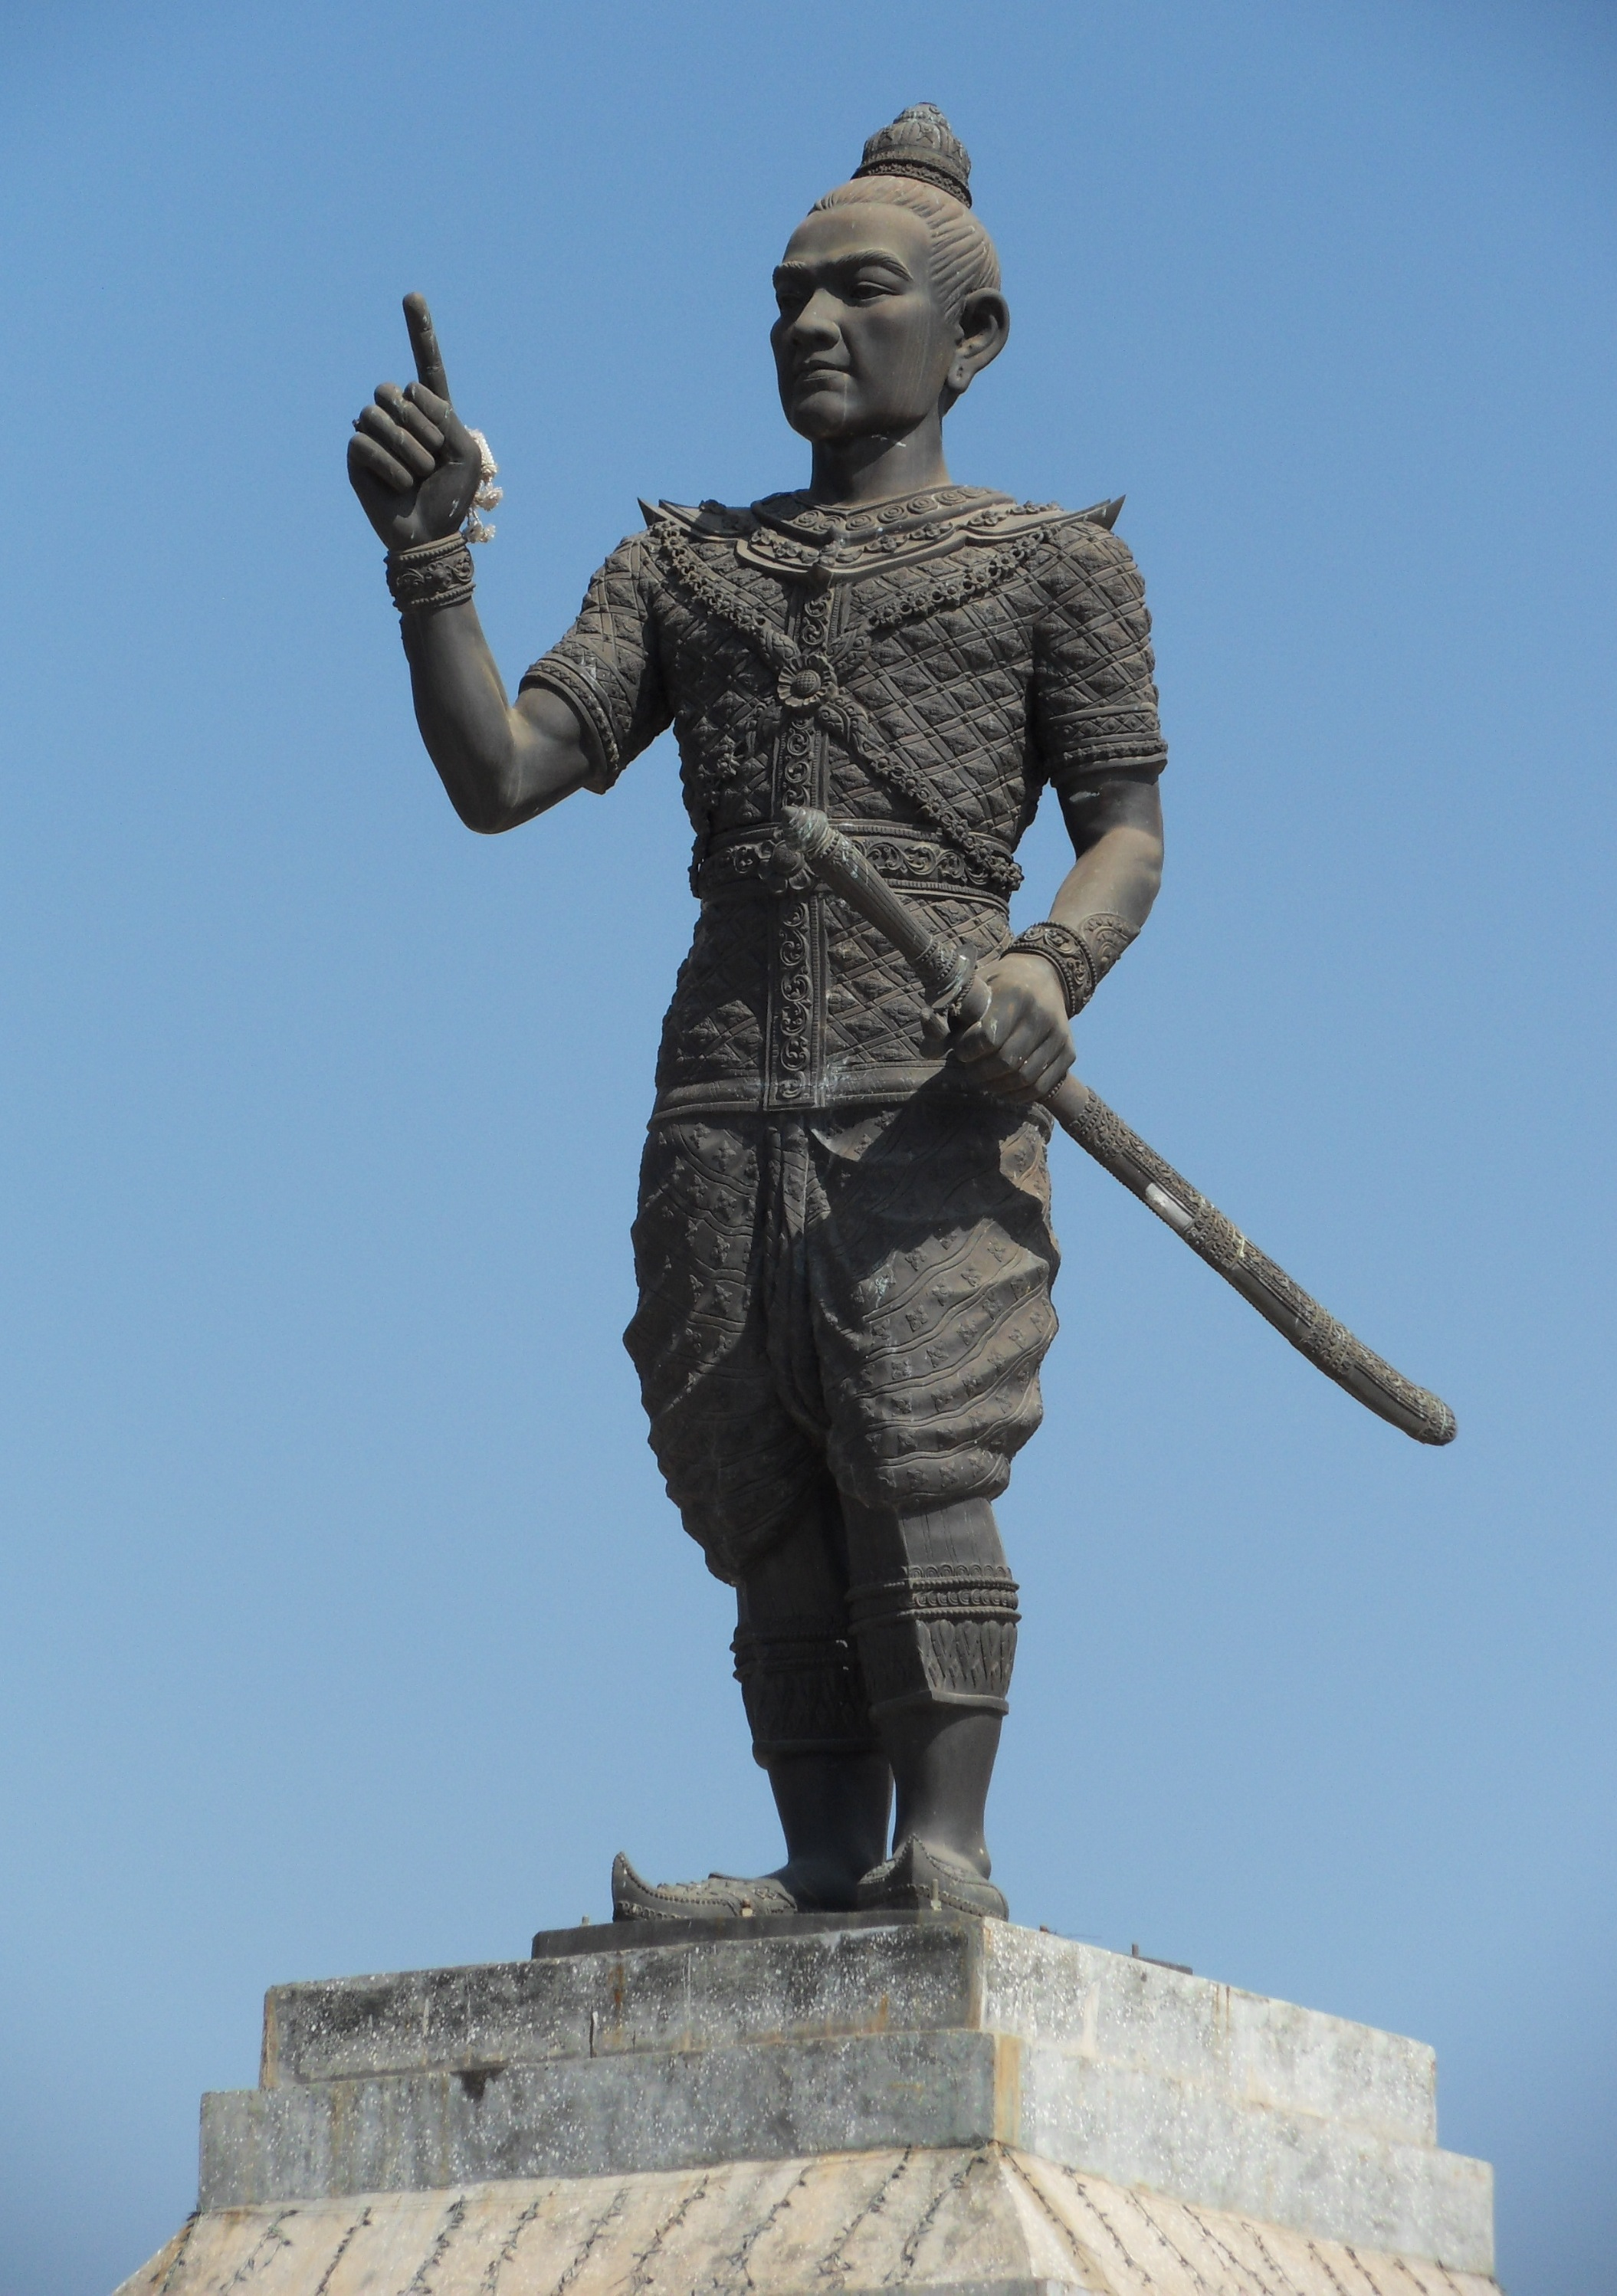 A statue of Fa Ngum, founder of the Lan Xang kingdom. Photo taken in Vientiane on December 2, 2011.